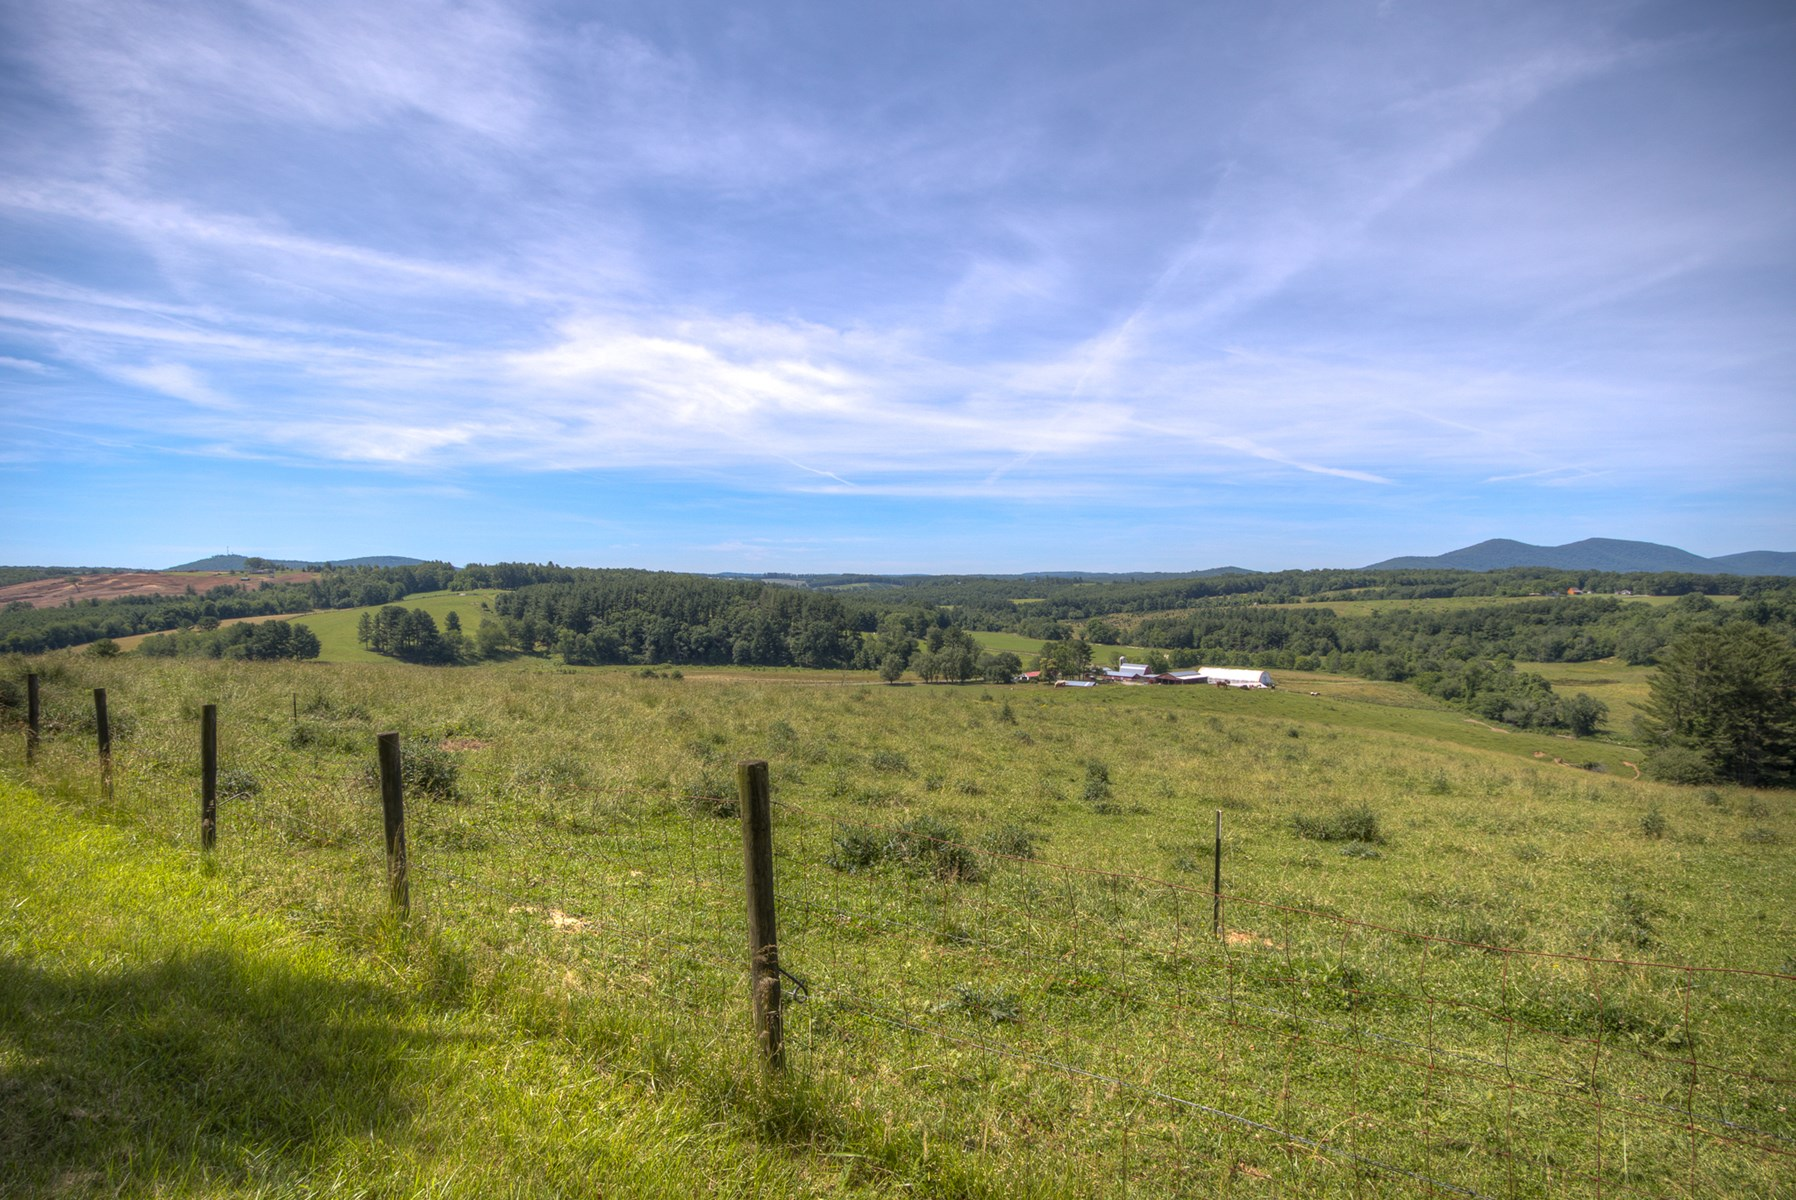 200+ Acre Working Farm with Magnificent Views